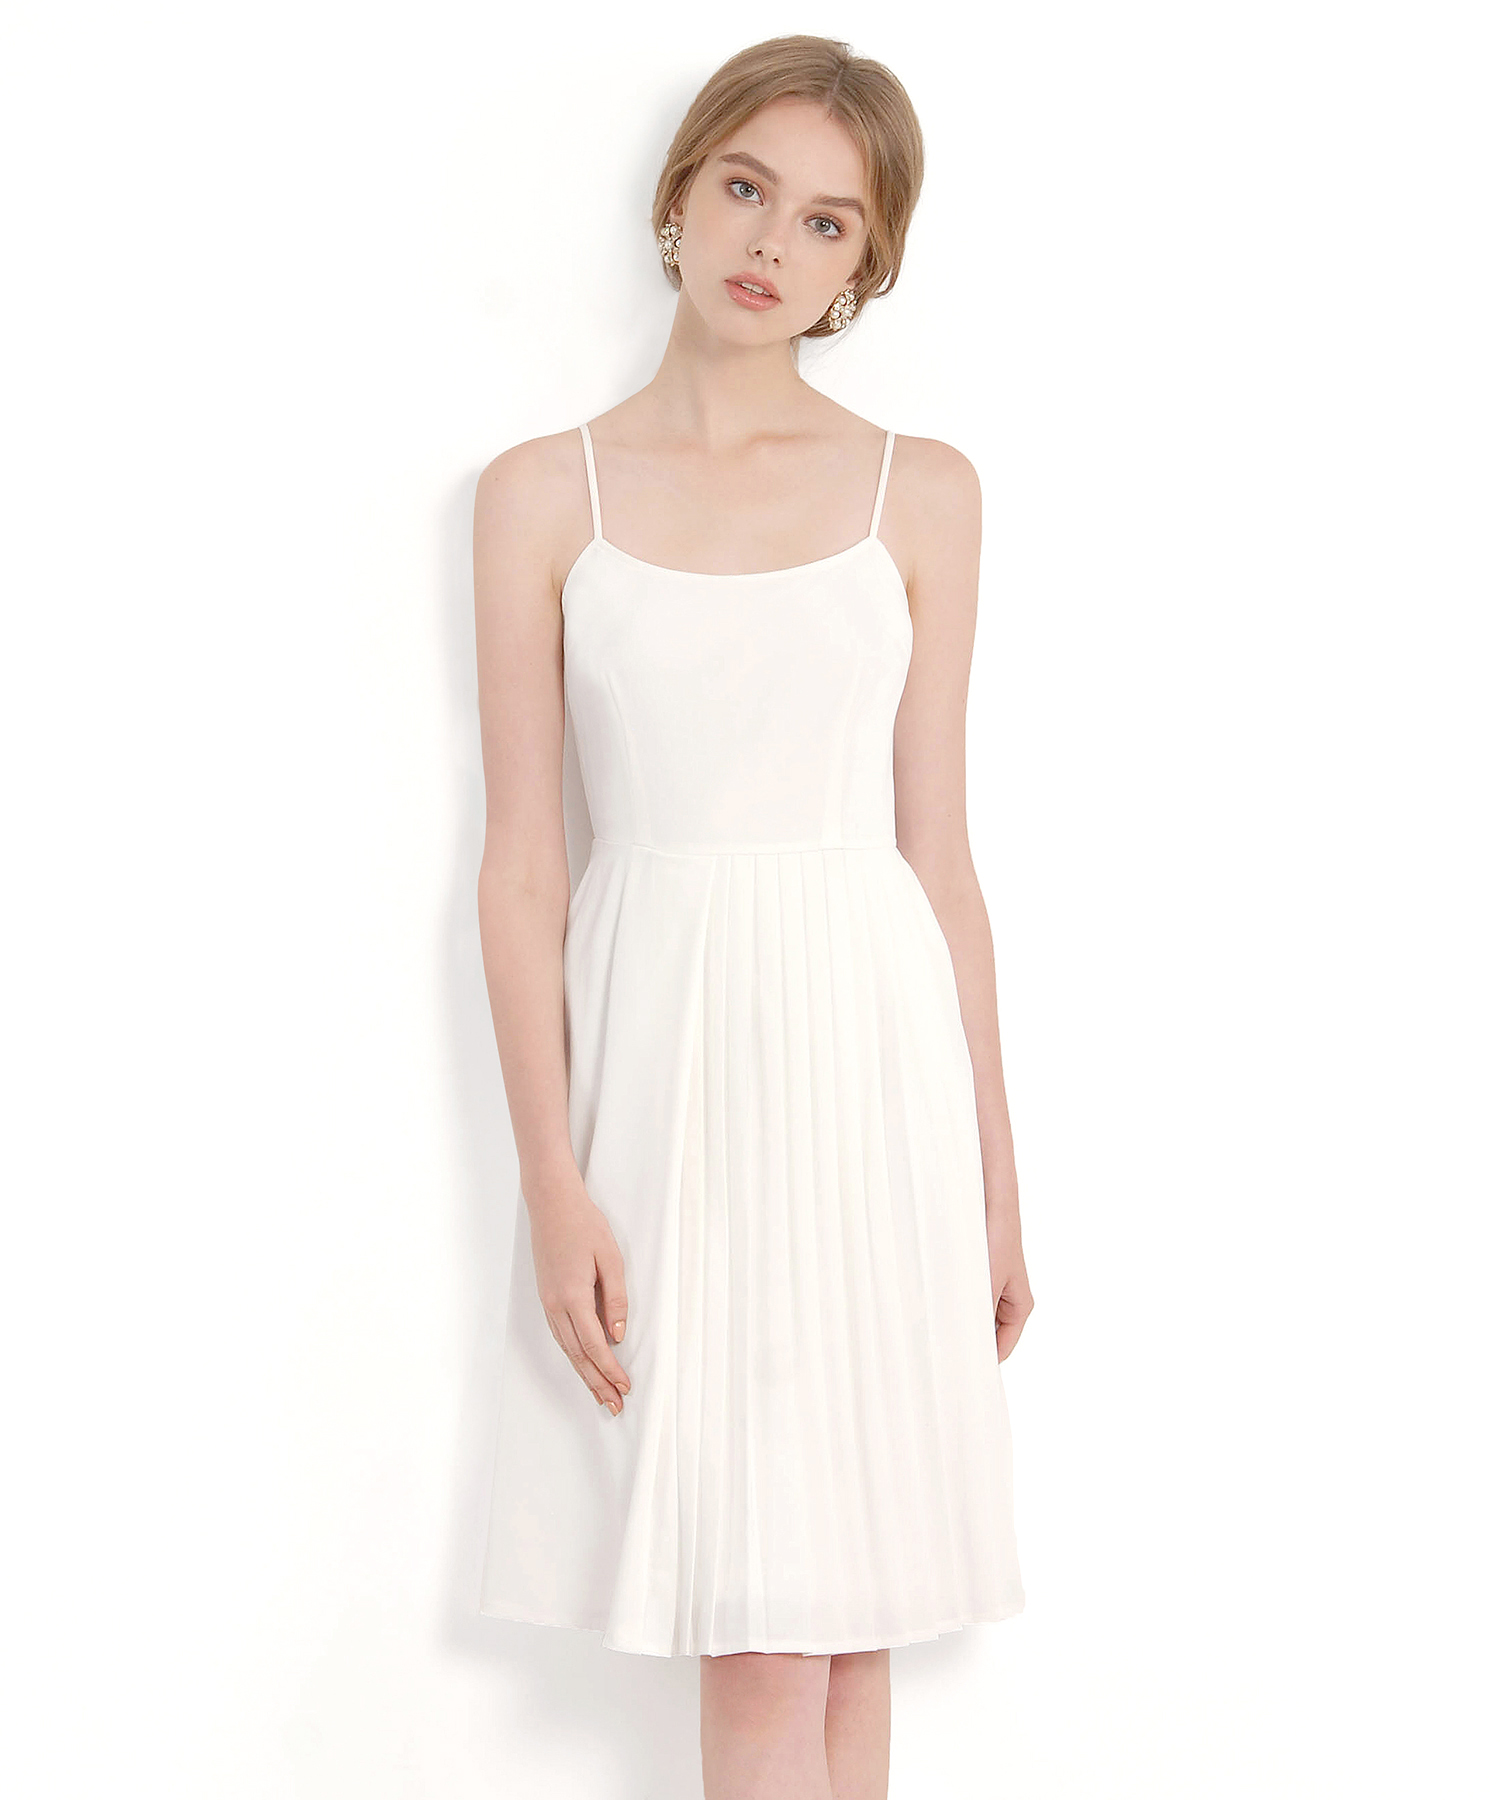 fbb6f21ef4 Isobel Pleated Midi Dress - White